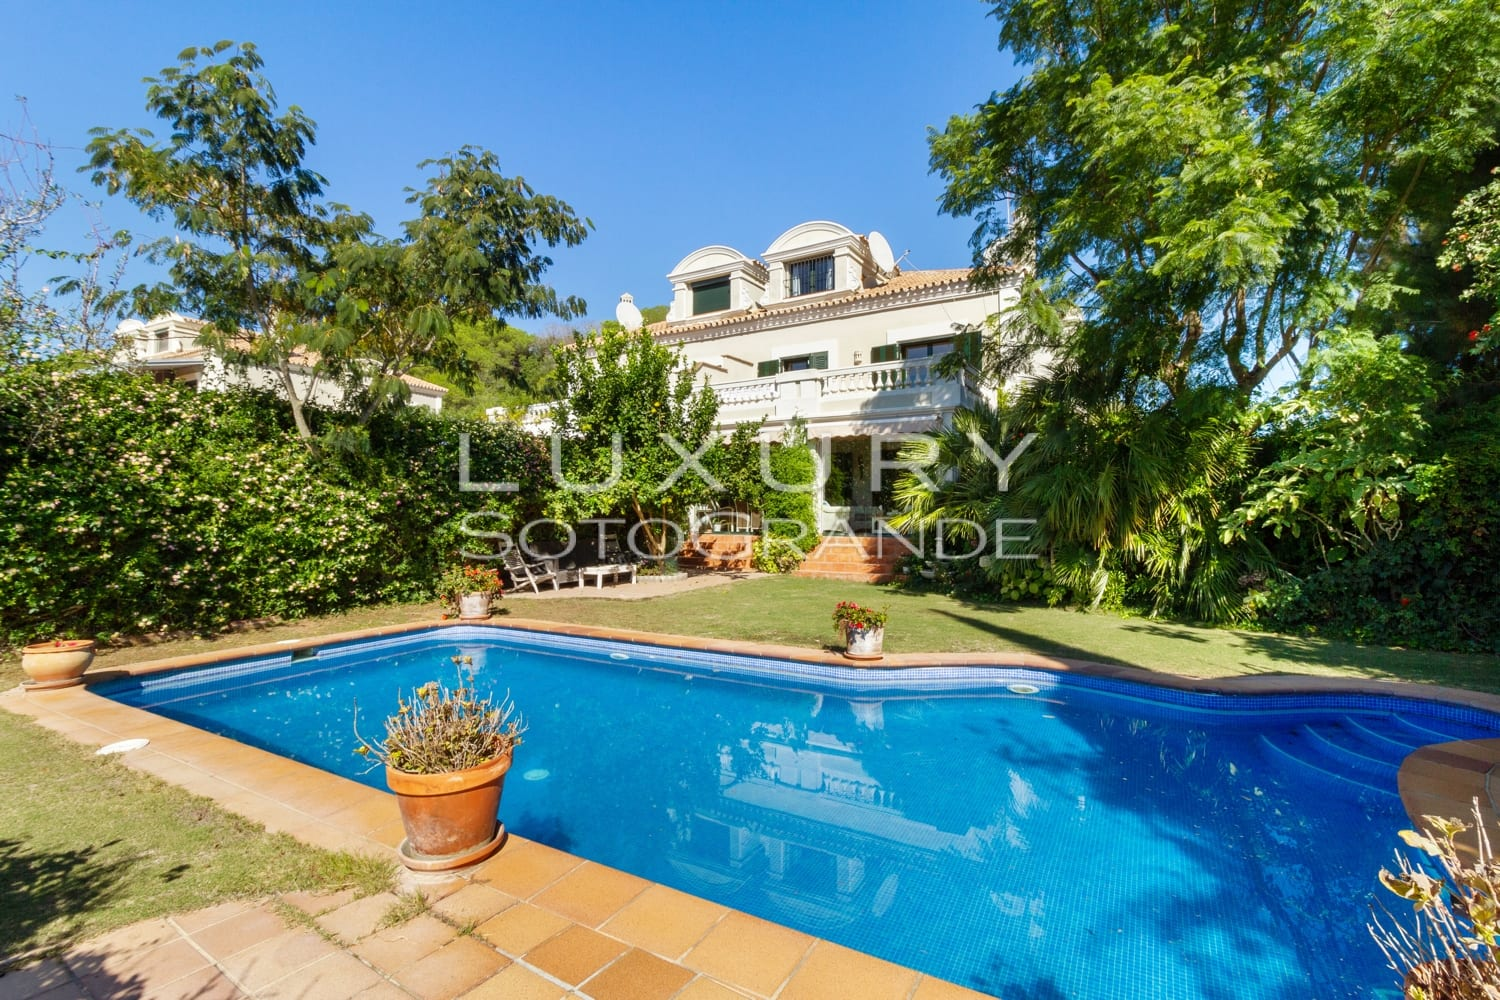 Spectacular semi detached house for sale, Sotogolf, Sotogrande